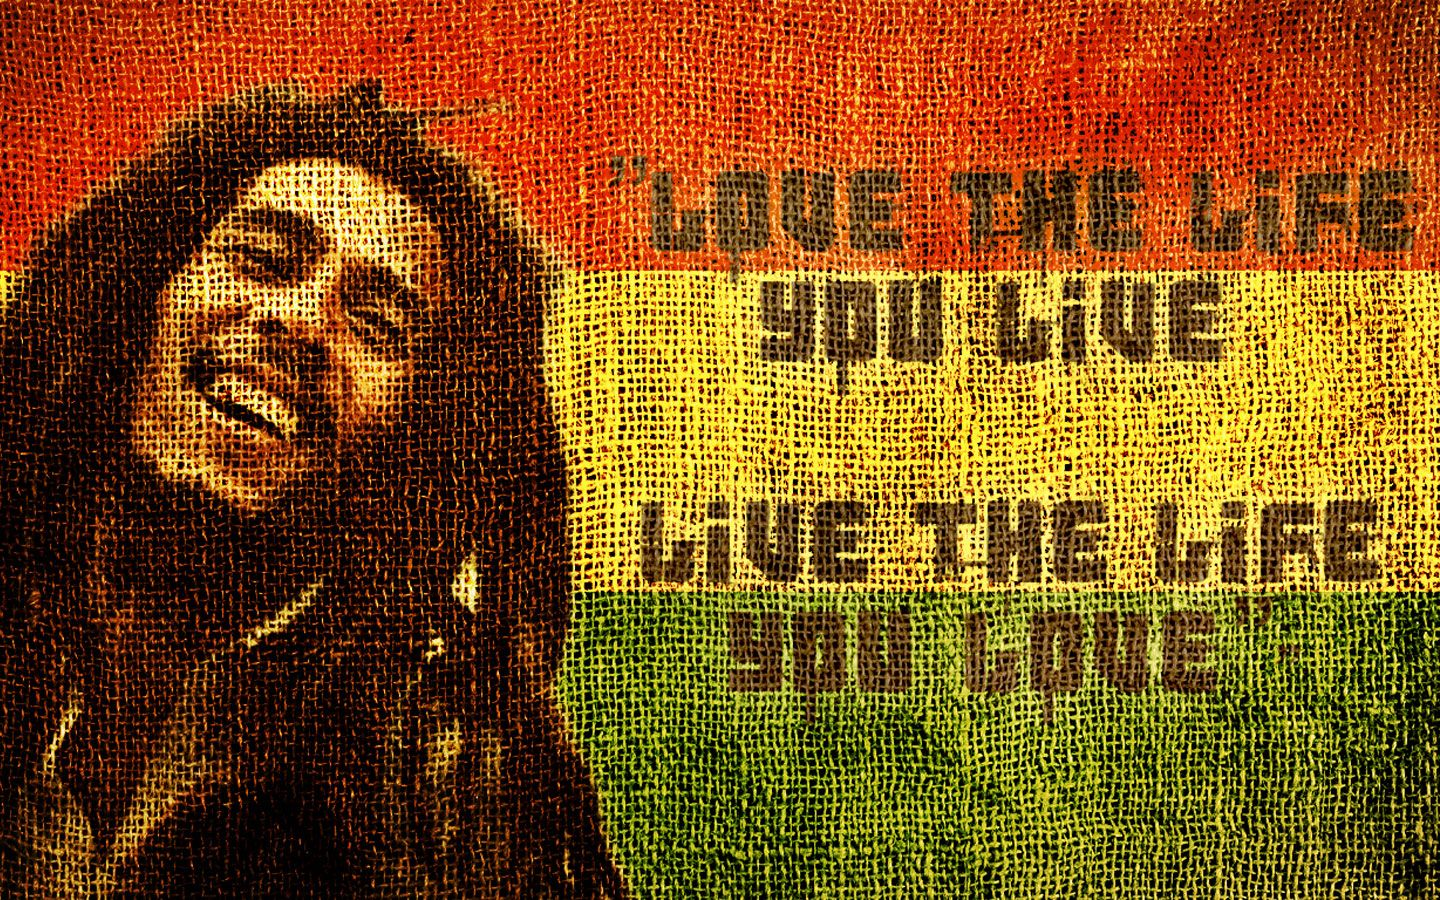 Bob Marley Quotes In Fabric Hd Wallpaper For Desktop Jpg 1440 900 Bob Marley Poster Bob Marley Quotes Bob Marley